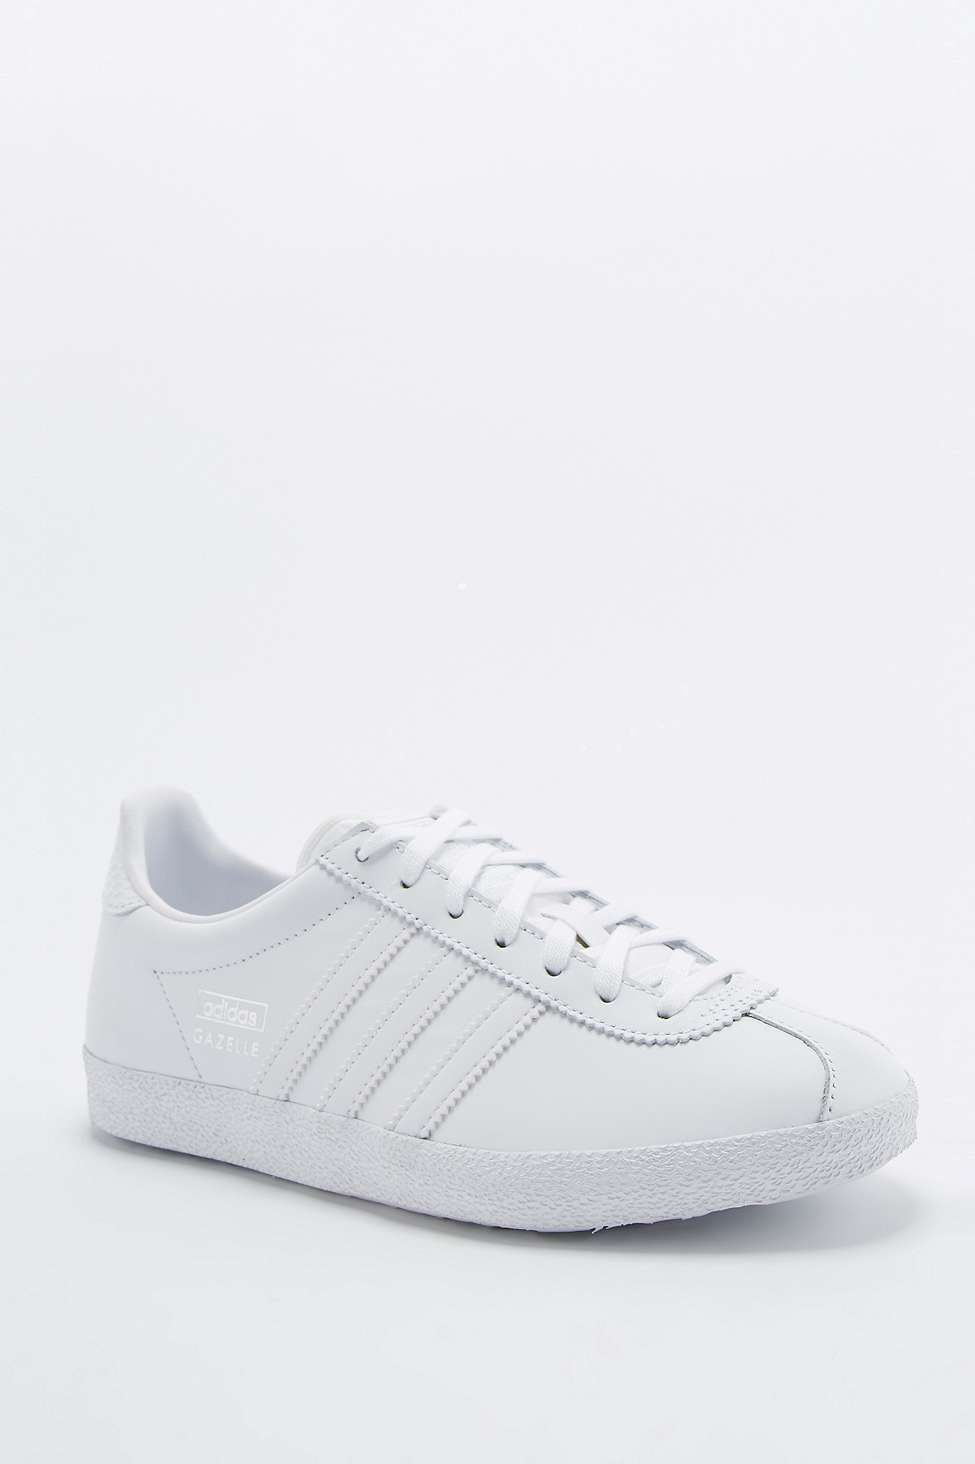 Adidas Originals Baskets Gazelle blanches | Sneakers